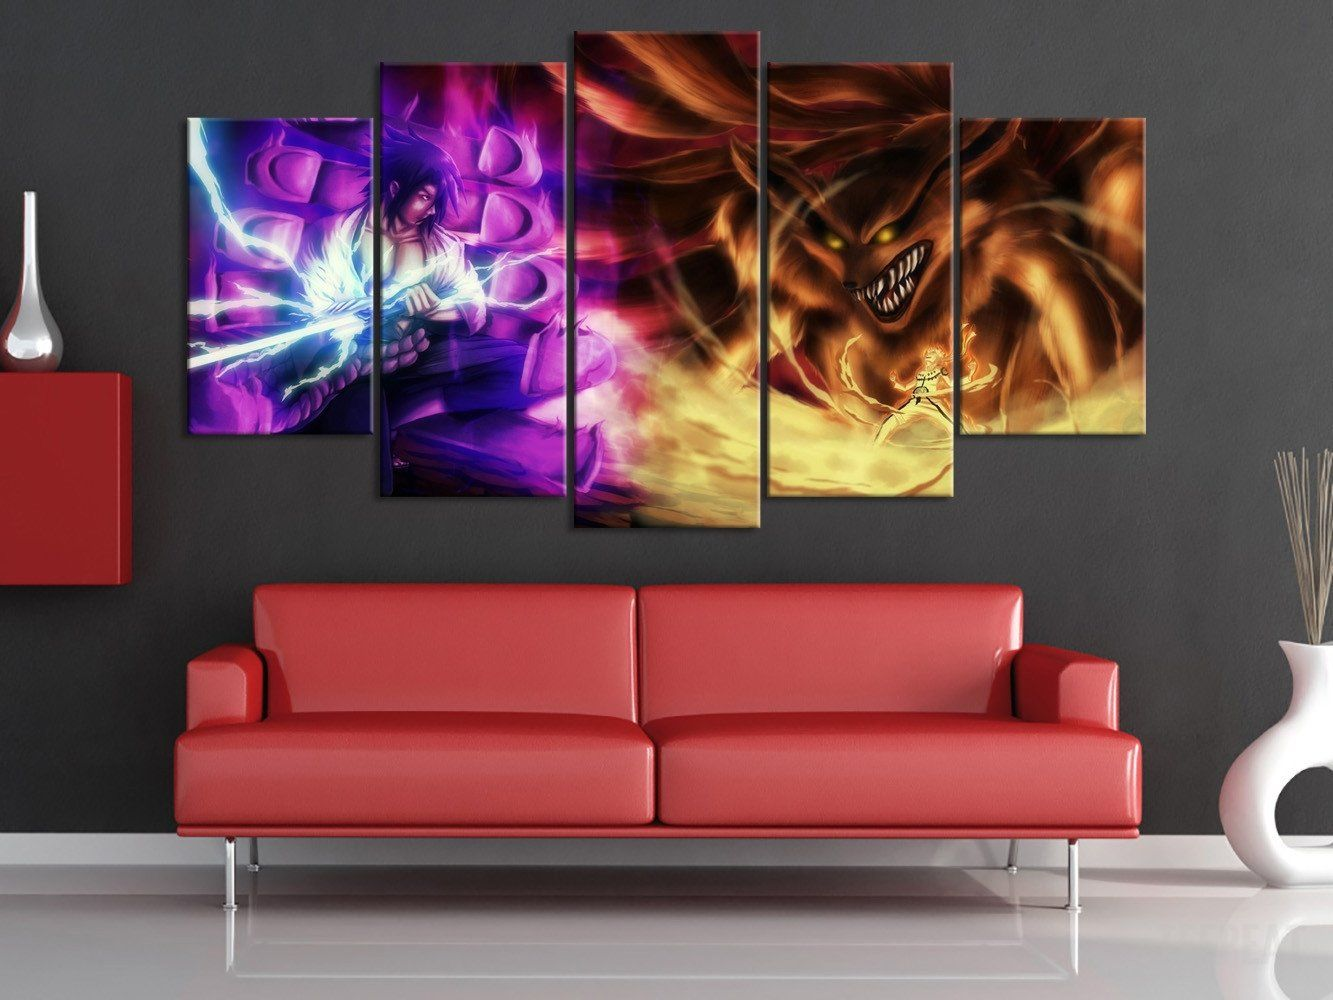 Susano vs 9 tail beast 5 piece canvas anime art painting 9 tails